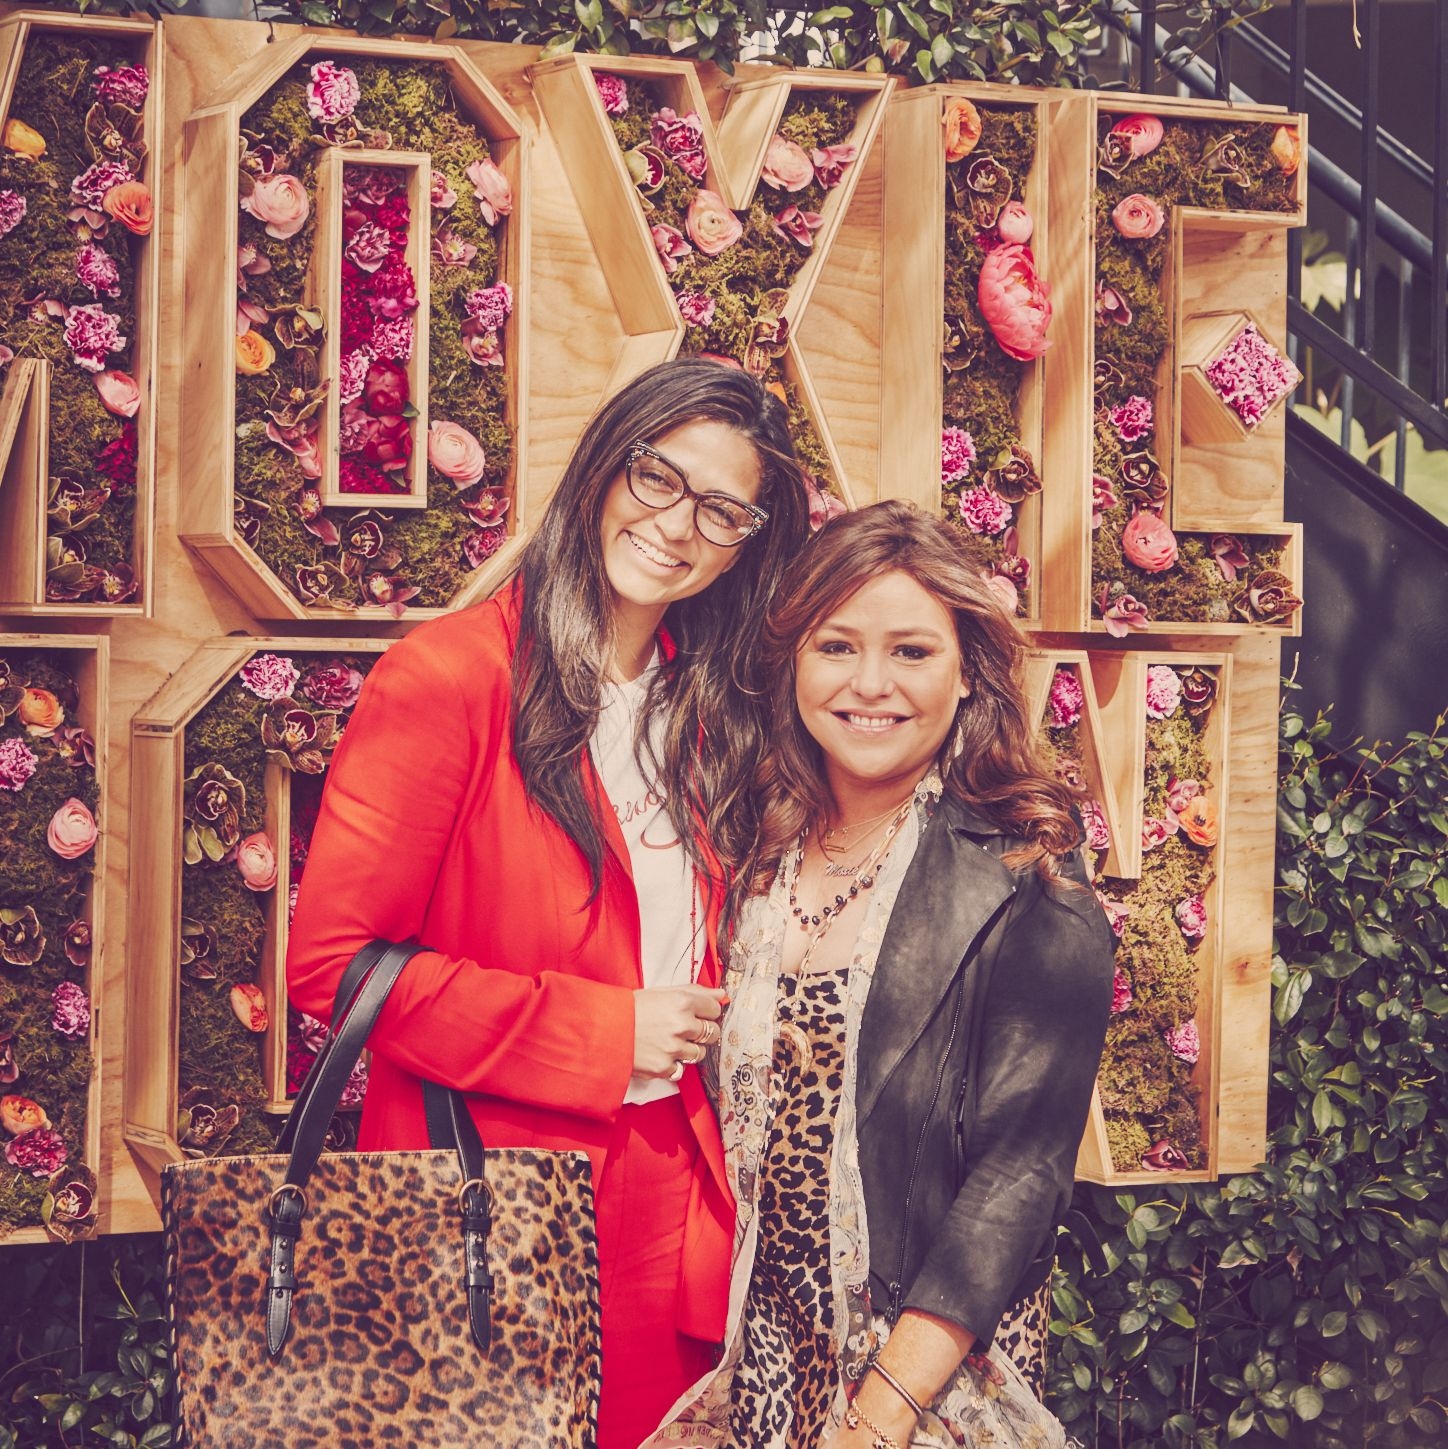 Rachael Ray Launches Fashion E-Commerce Site Featuring Female-Founded Brands